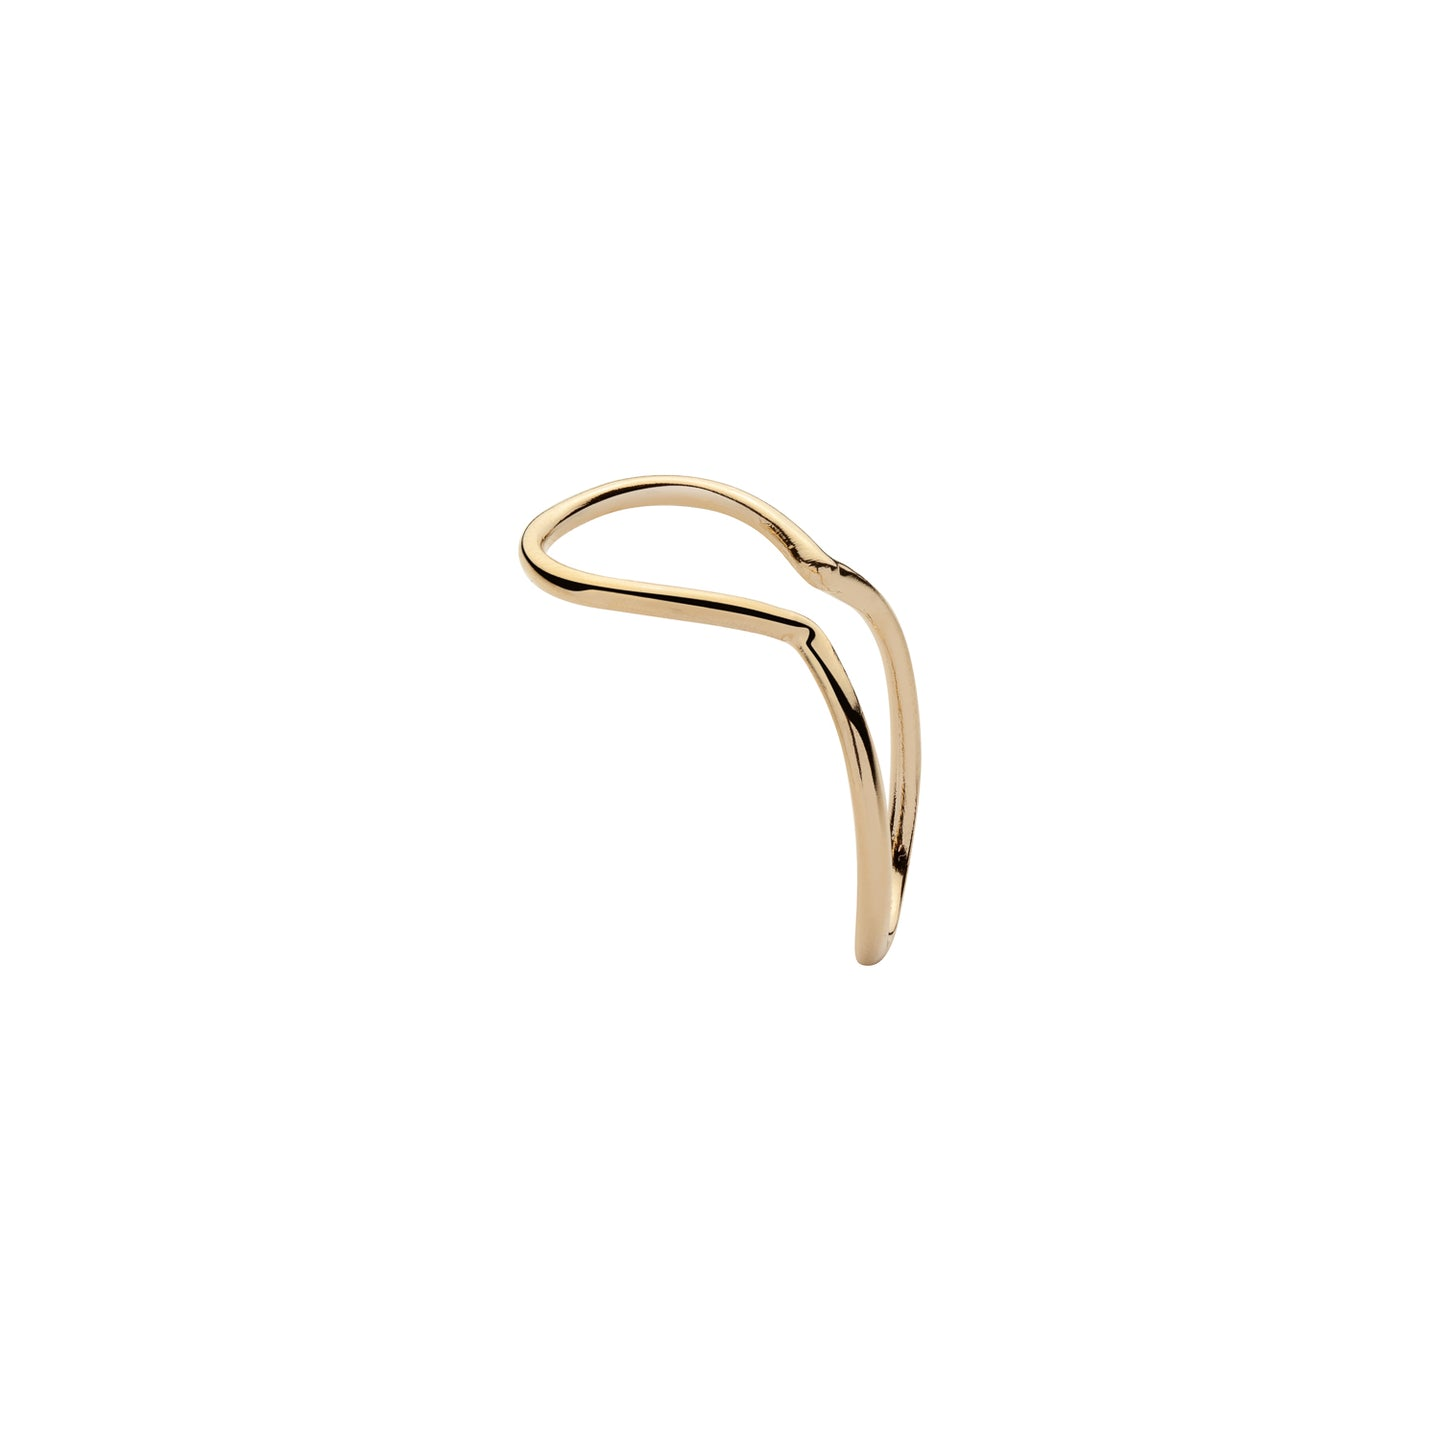 Minimal Thread Ear Cuff